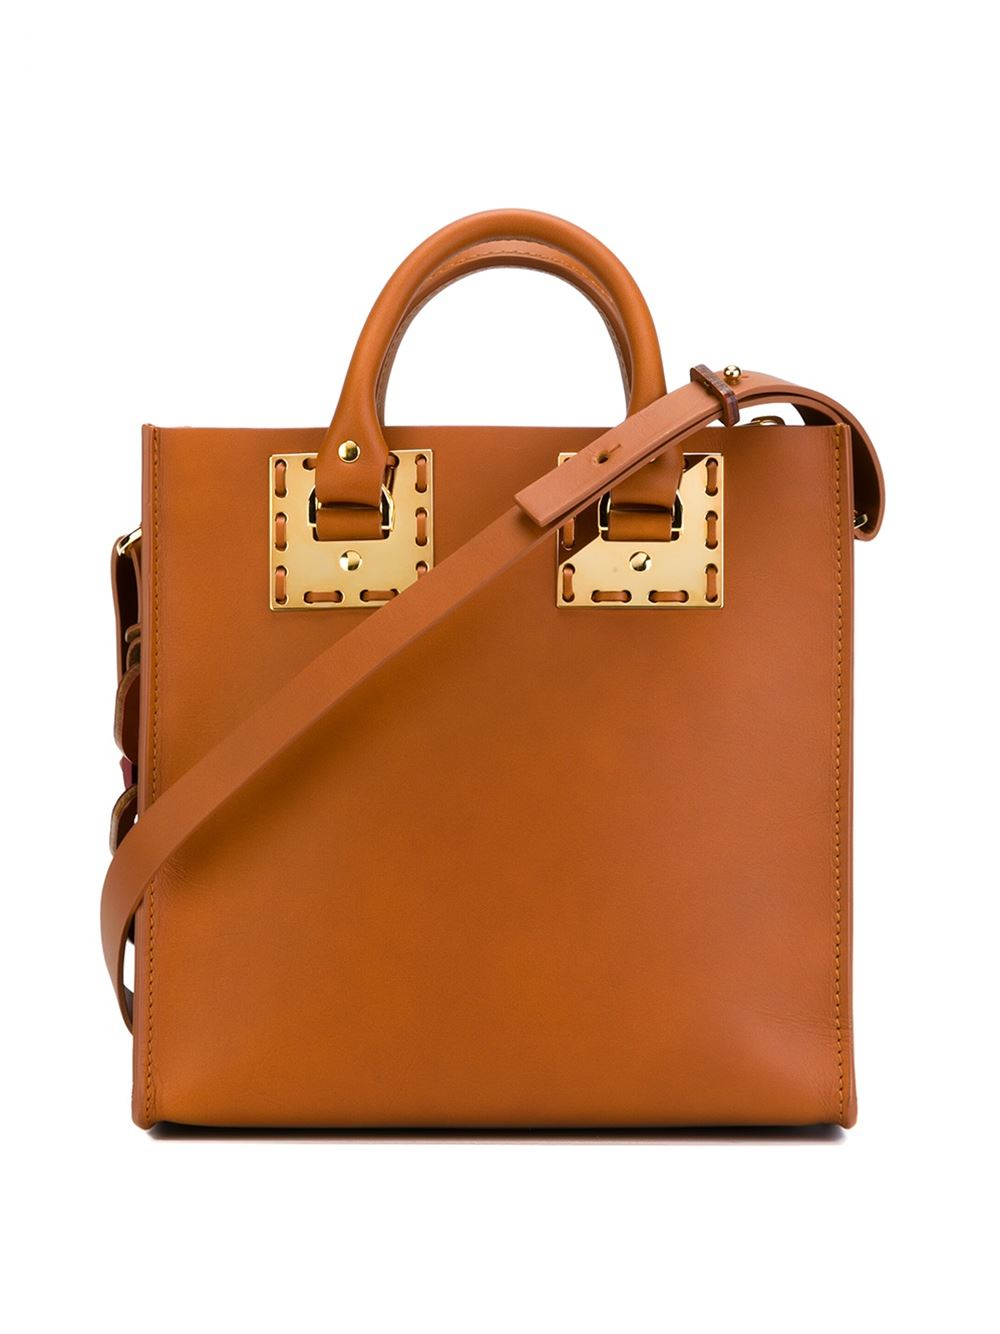 Sophie Hulme 'square Albion' Tote in Brown